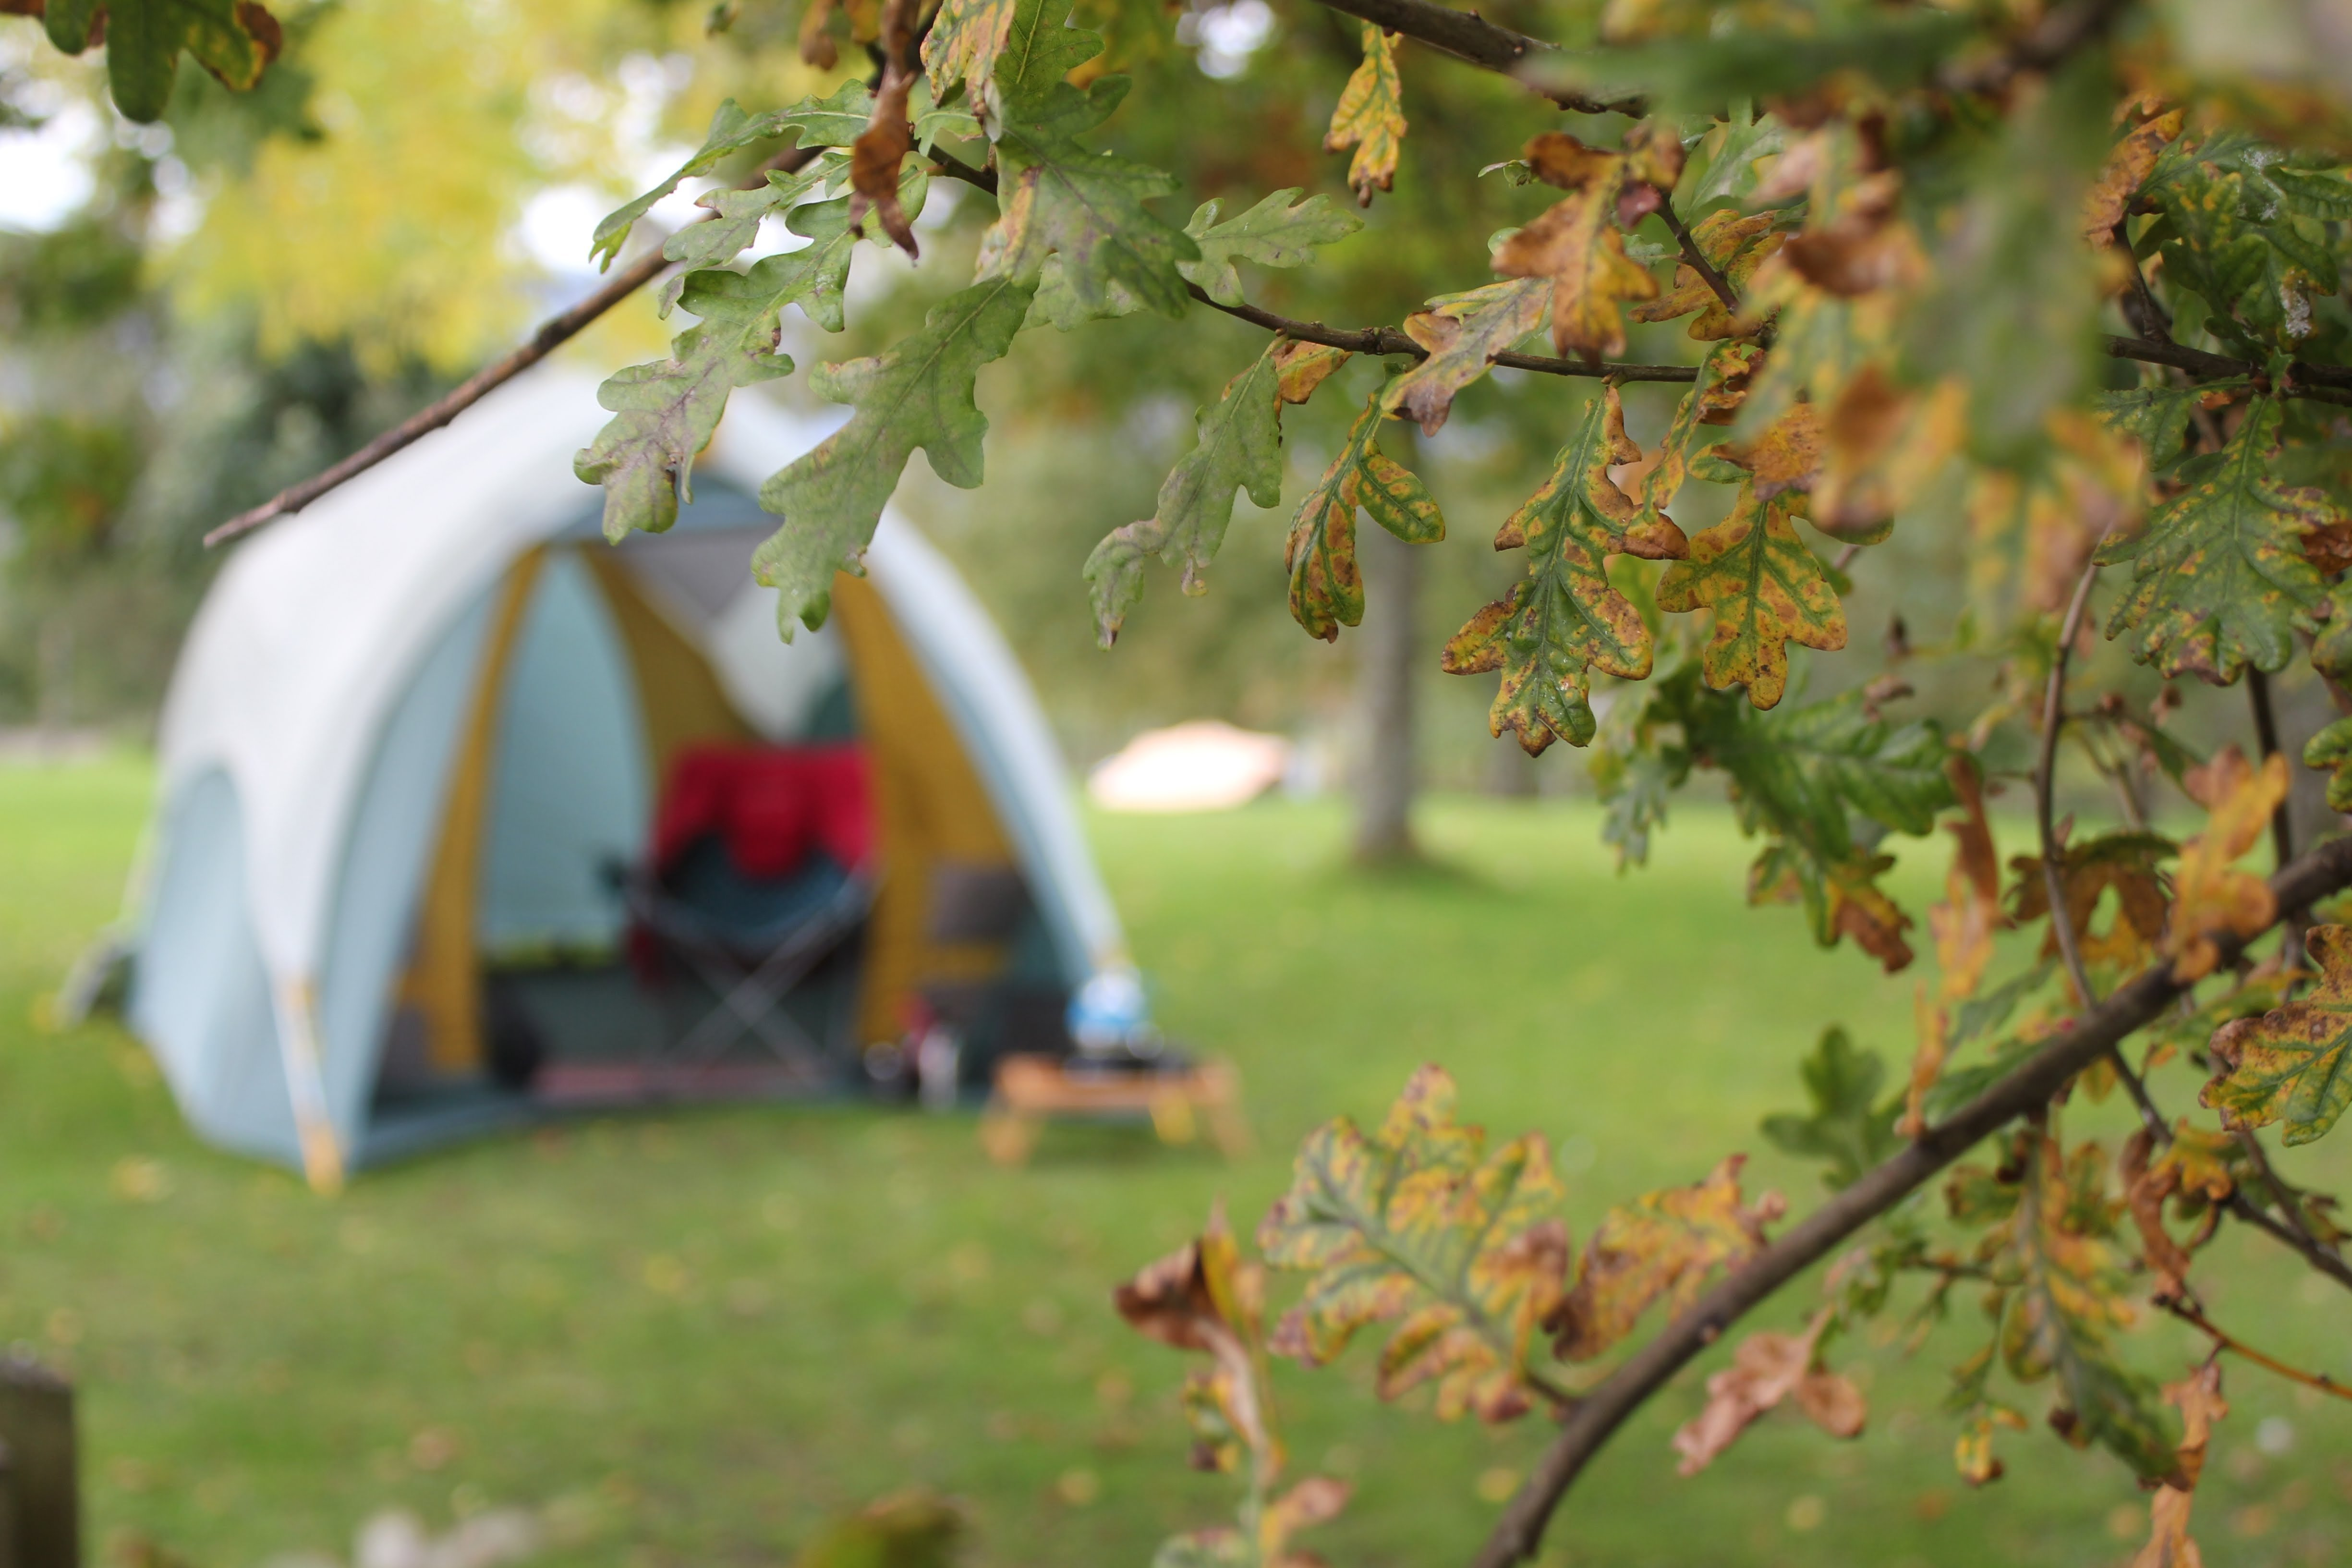 A blurred image of a tent on a field   Source: Unsplash